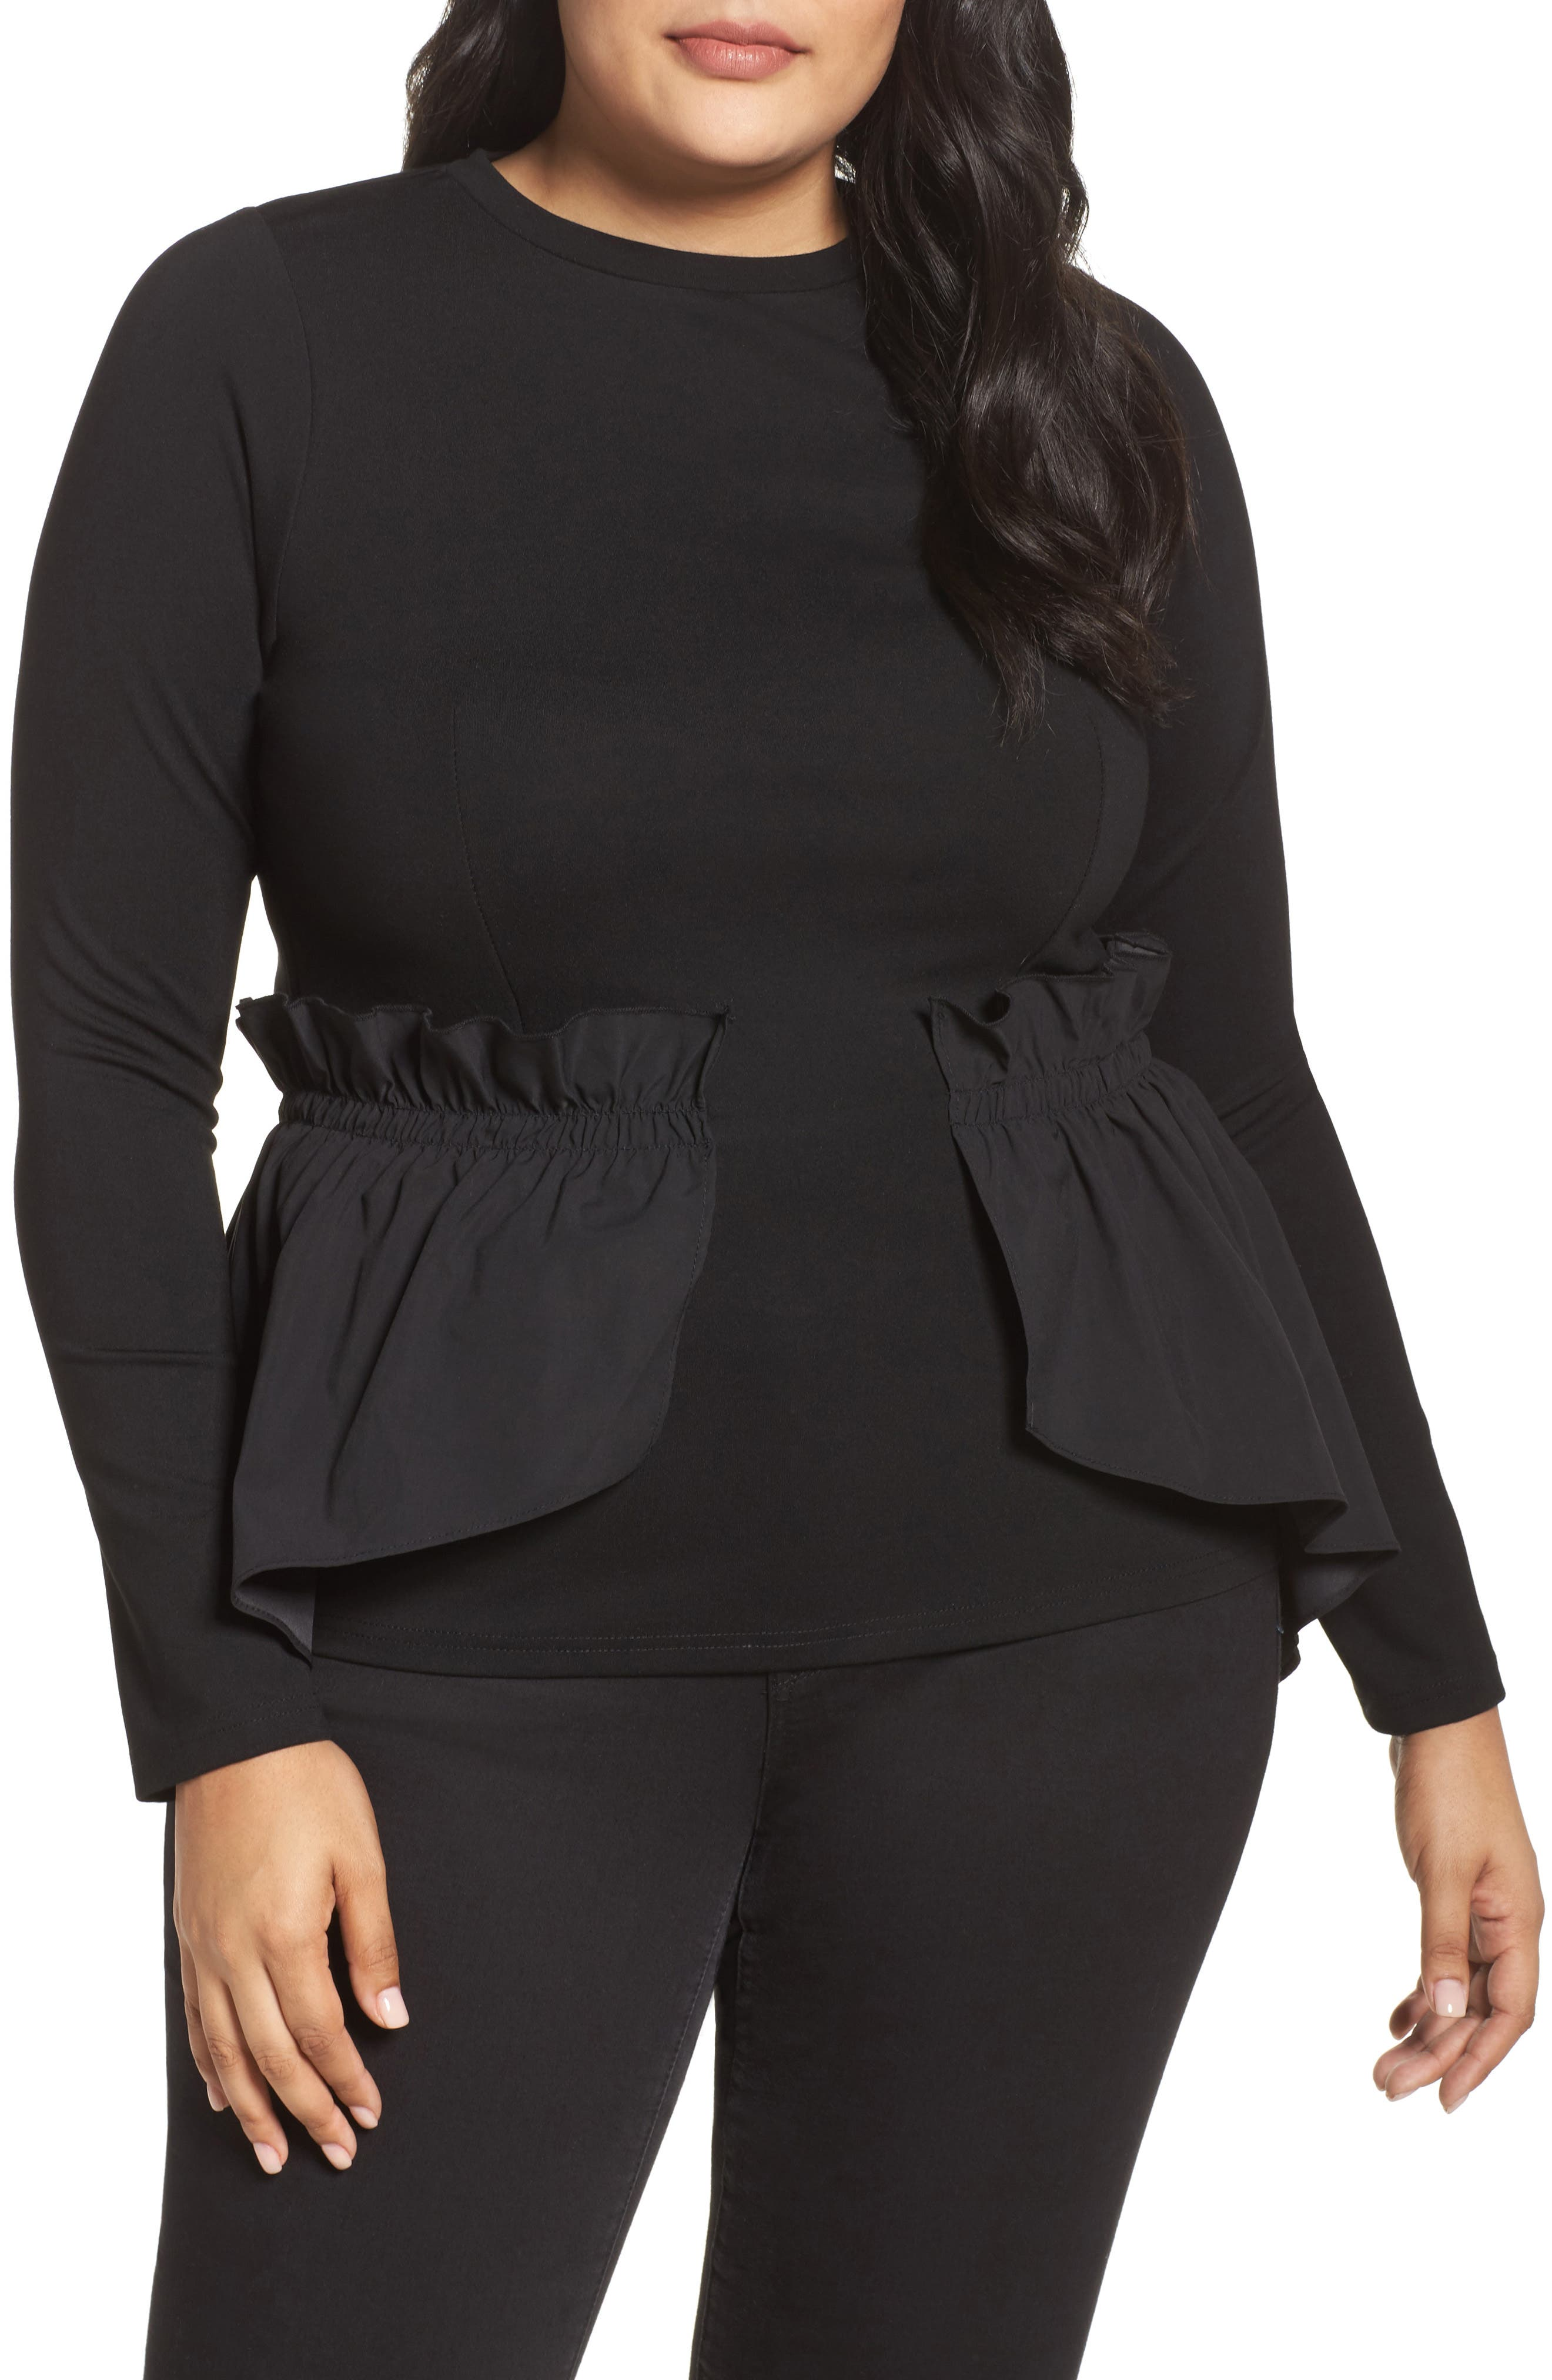 Alternate Image 1 Selected - LOST INK Shirred Waist Top (Plus Size)